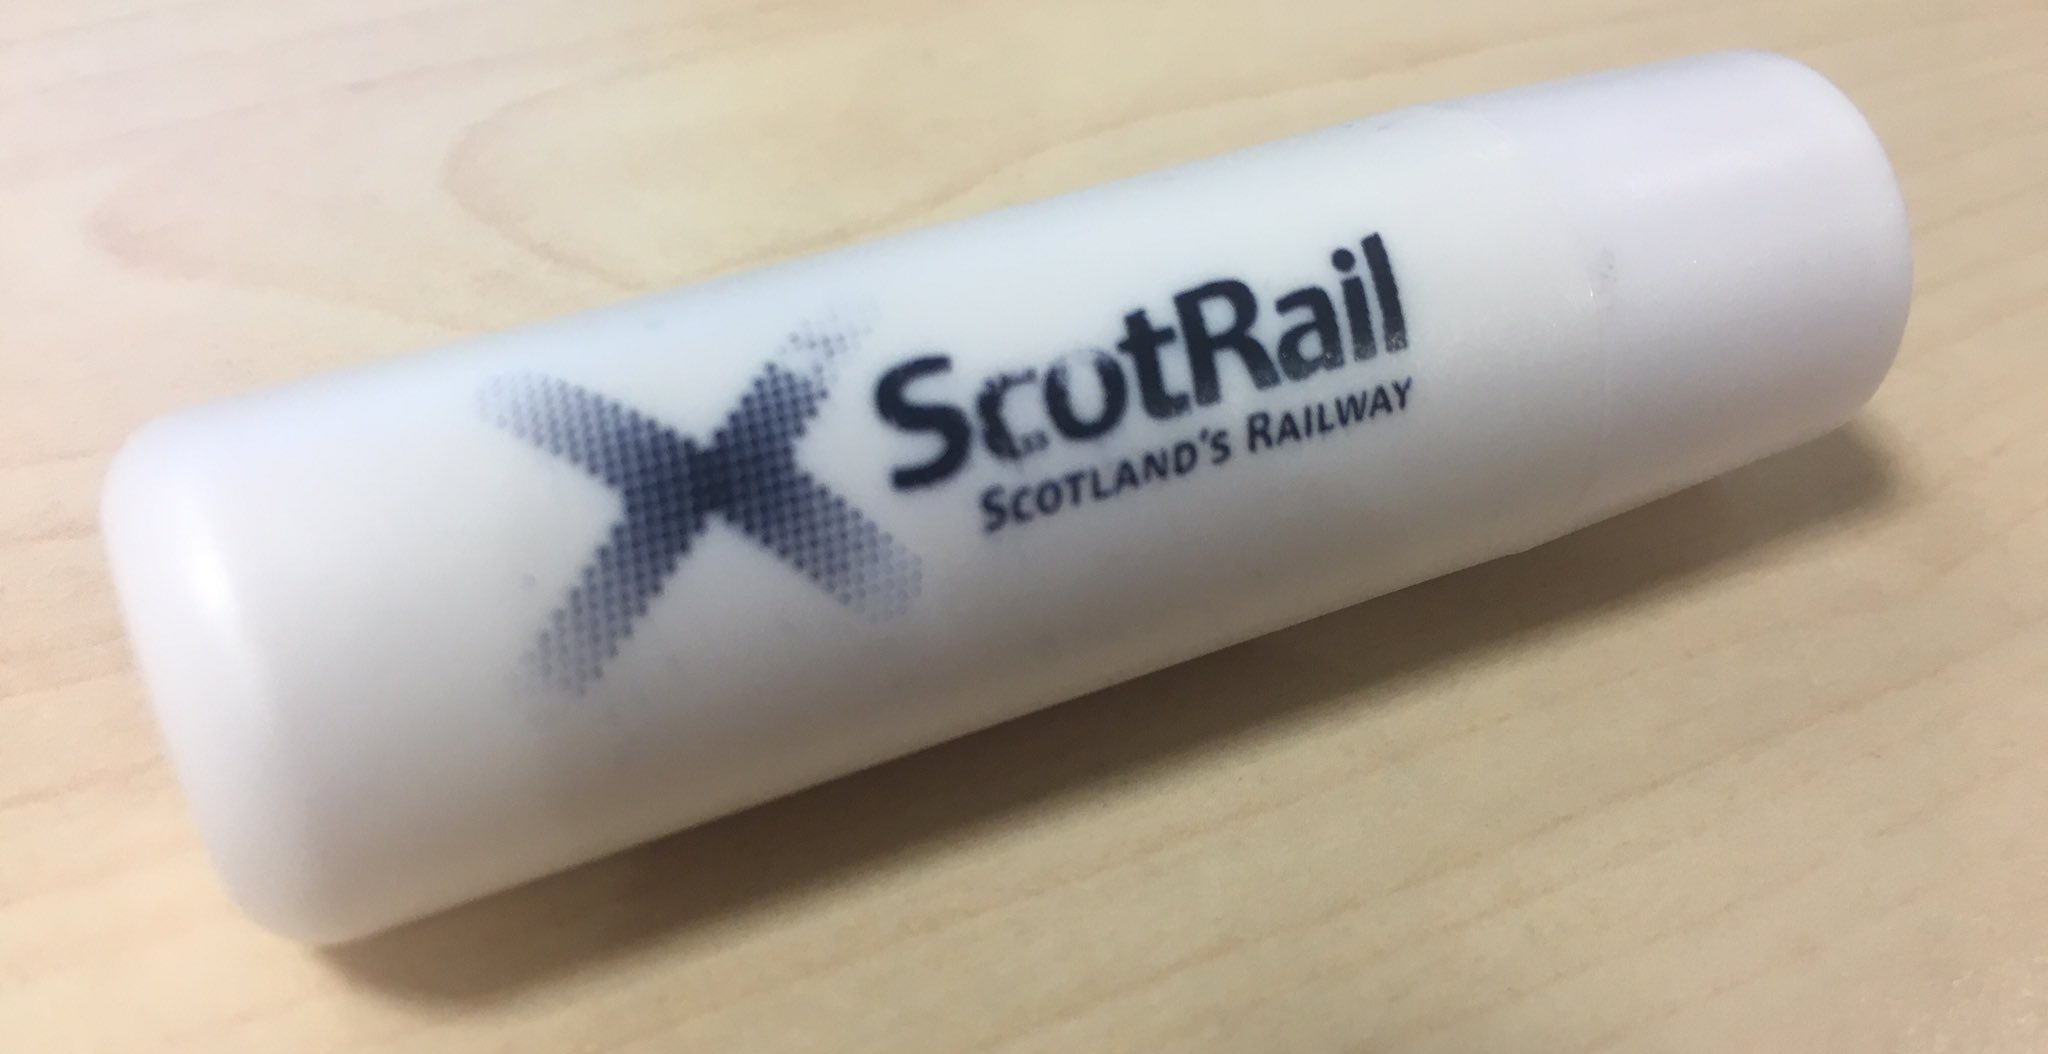 ScotRail came under fire from some passengers for handing out the free gifts.